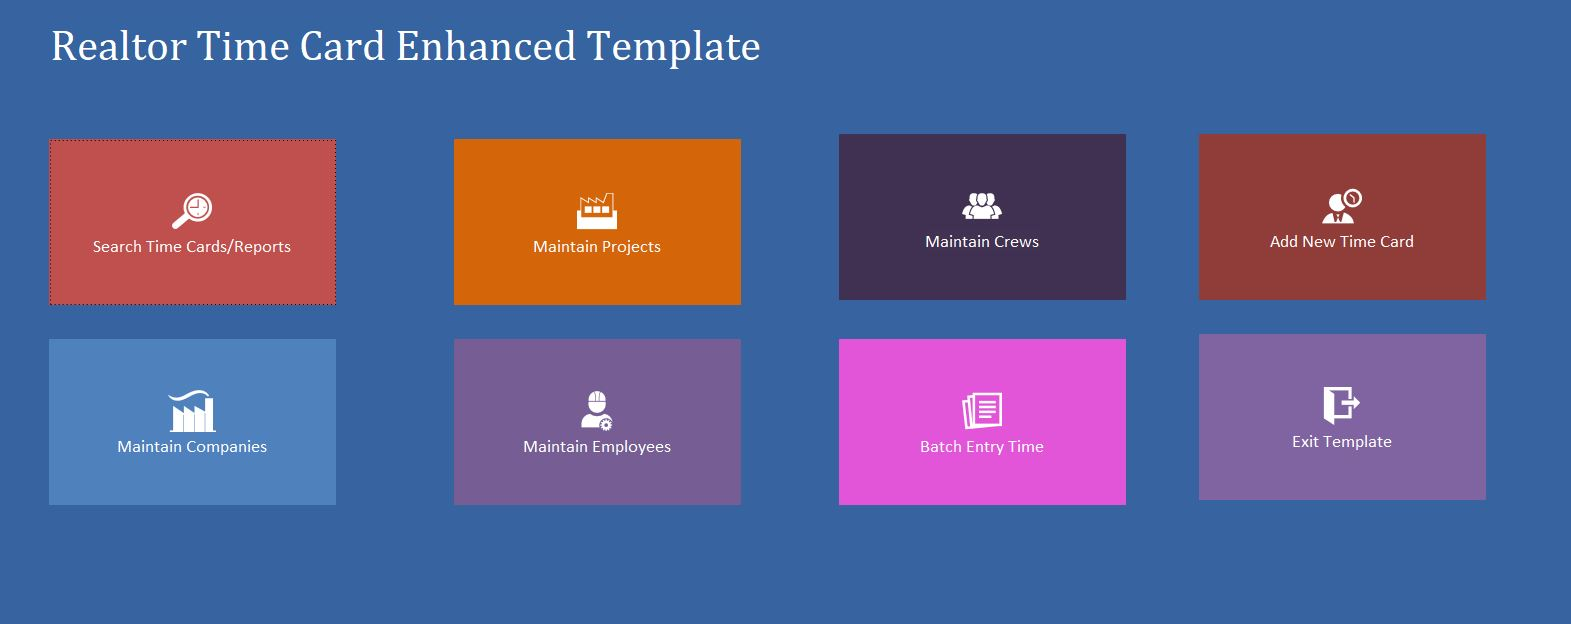 Enhanced Realtor Time Card Template | Time Card Database